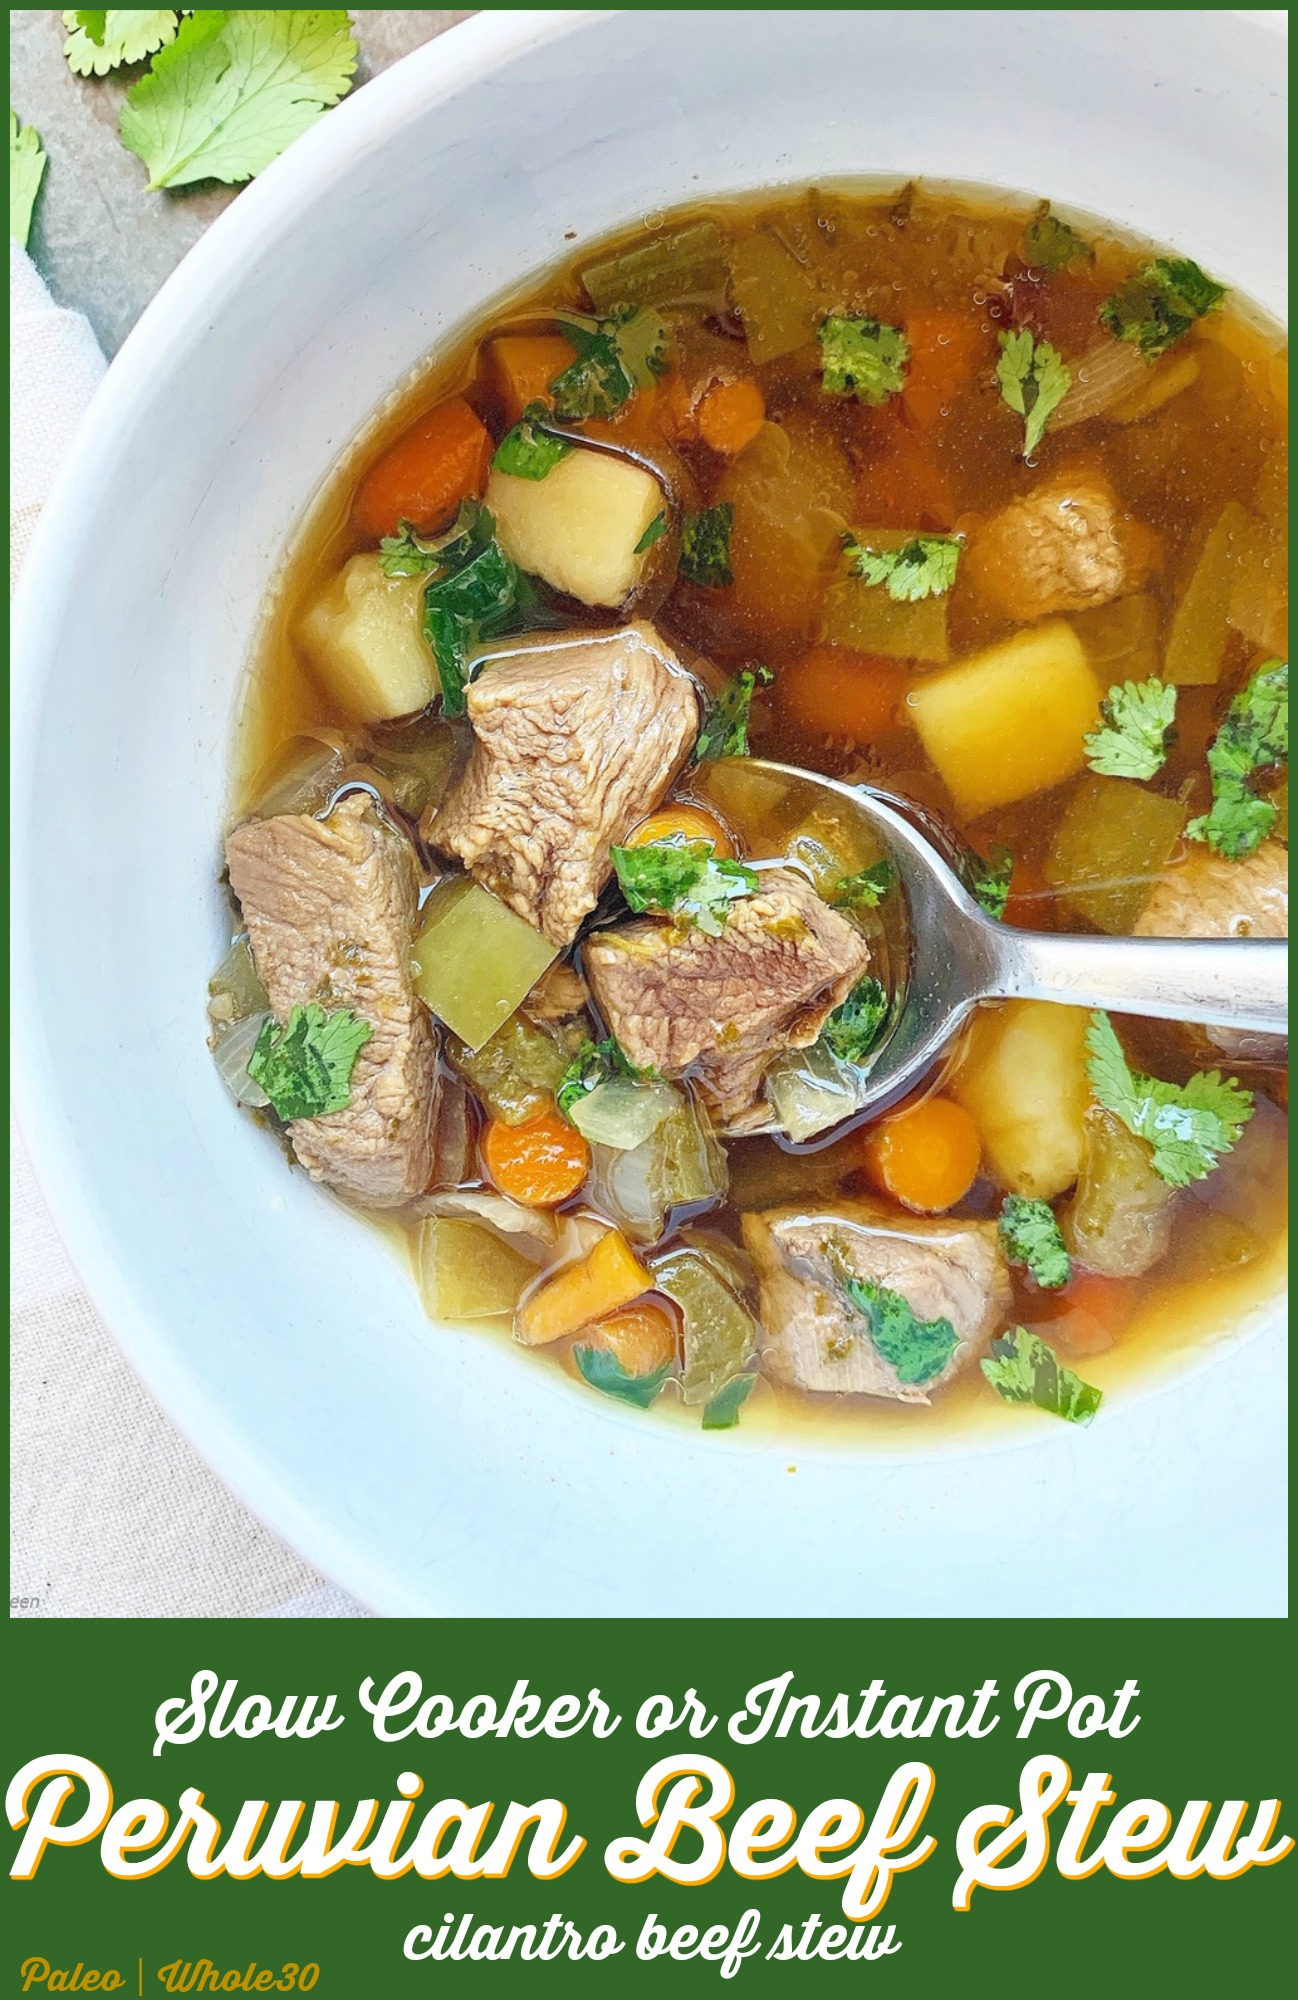 Peruvian or cilantro beef stew is an simple yet flavorful stew using chunks of beef, cilantro, potatoes, and veggies. Make this hearty stew in your slow cooker or Instant Pot.